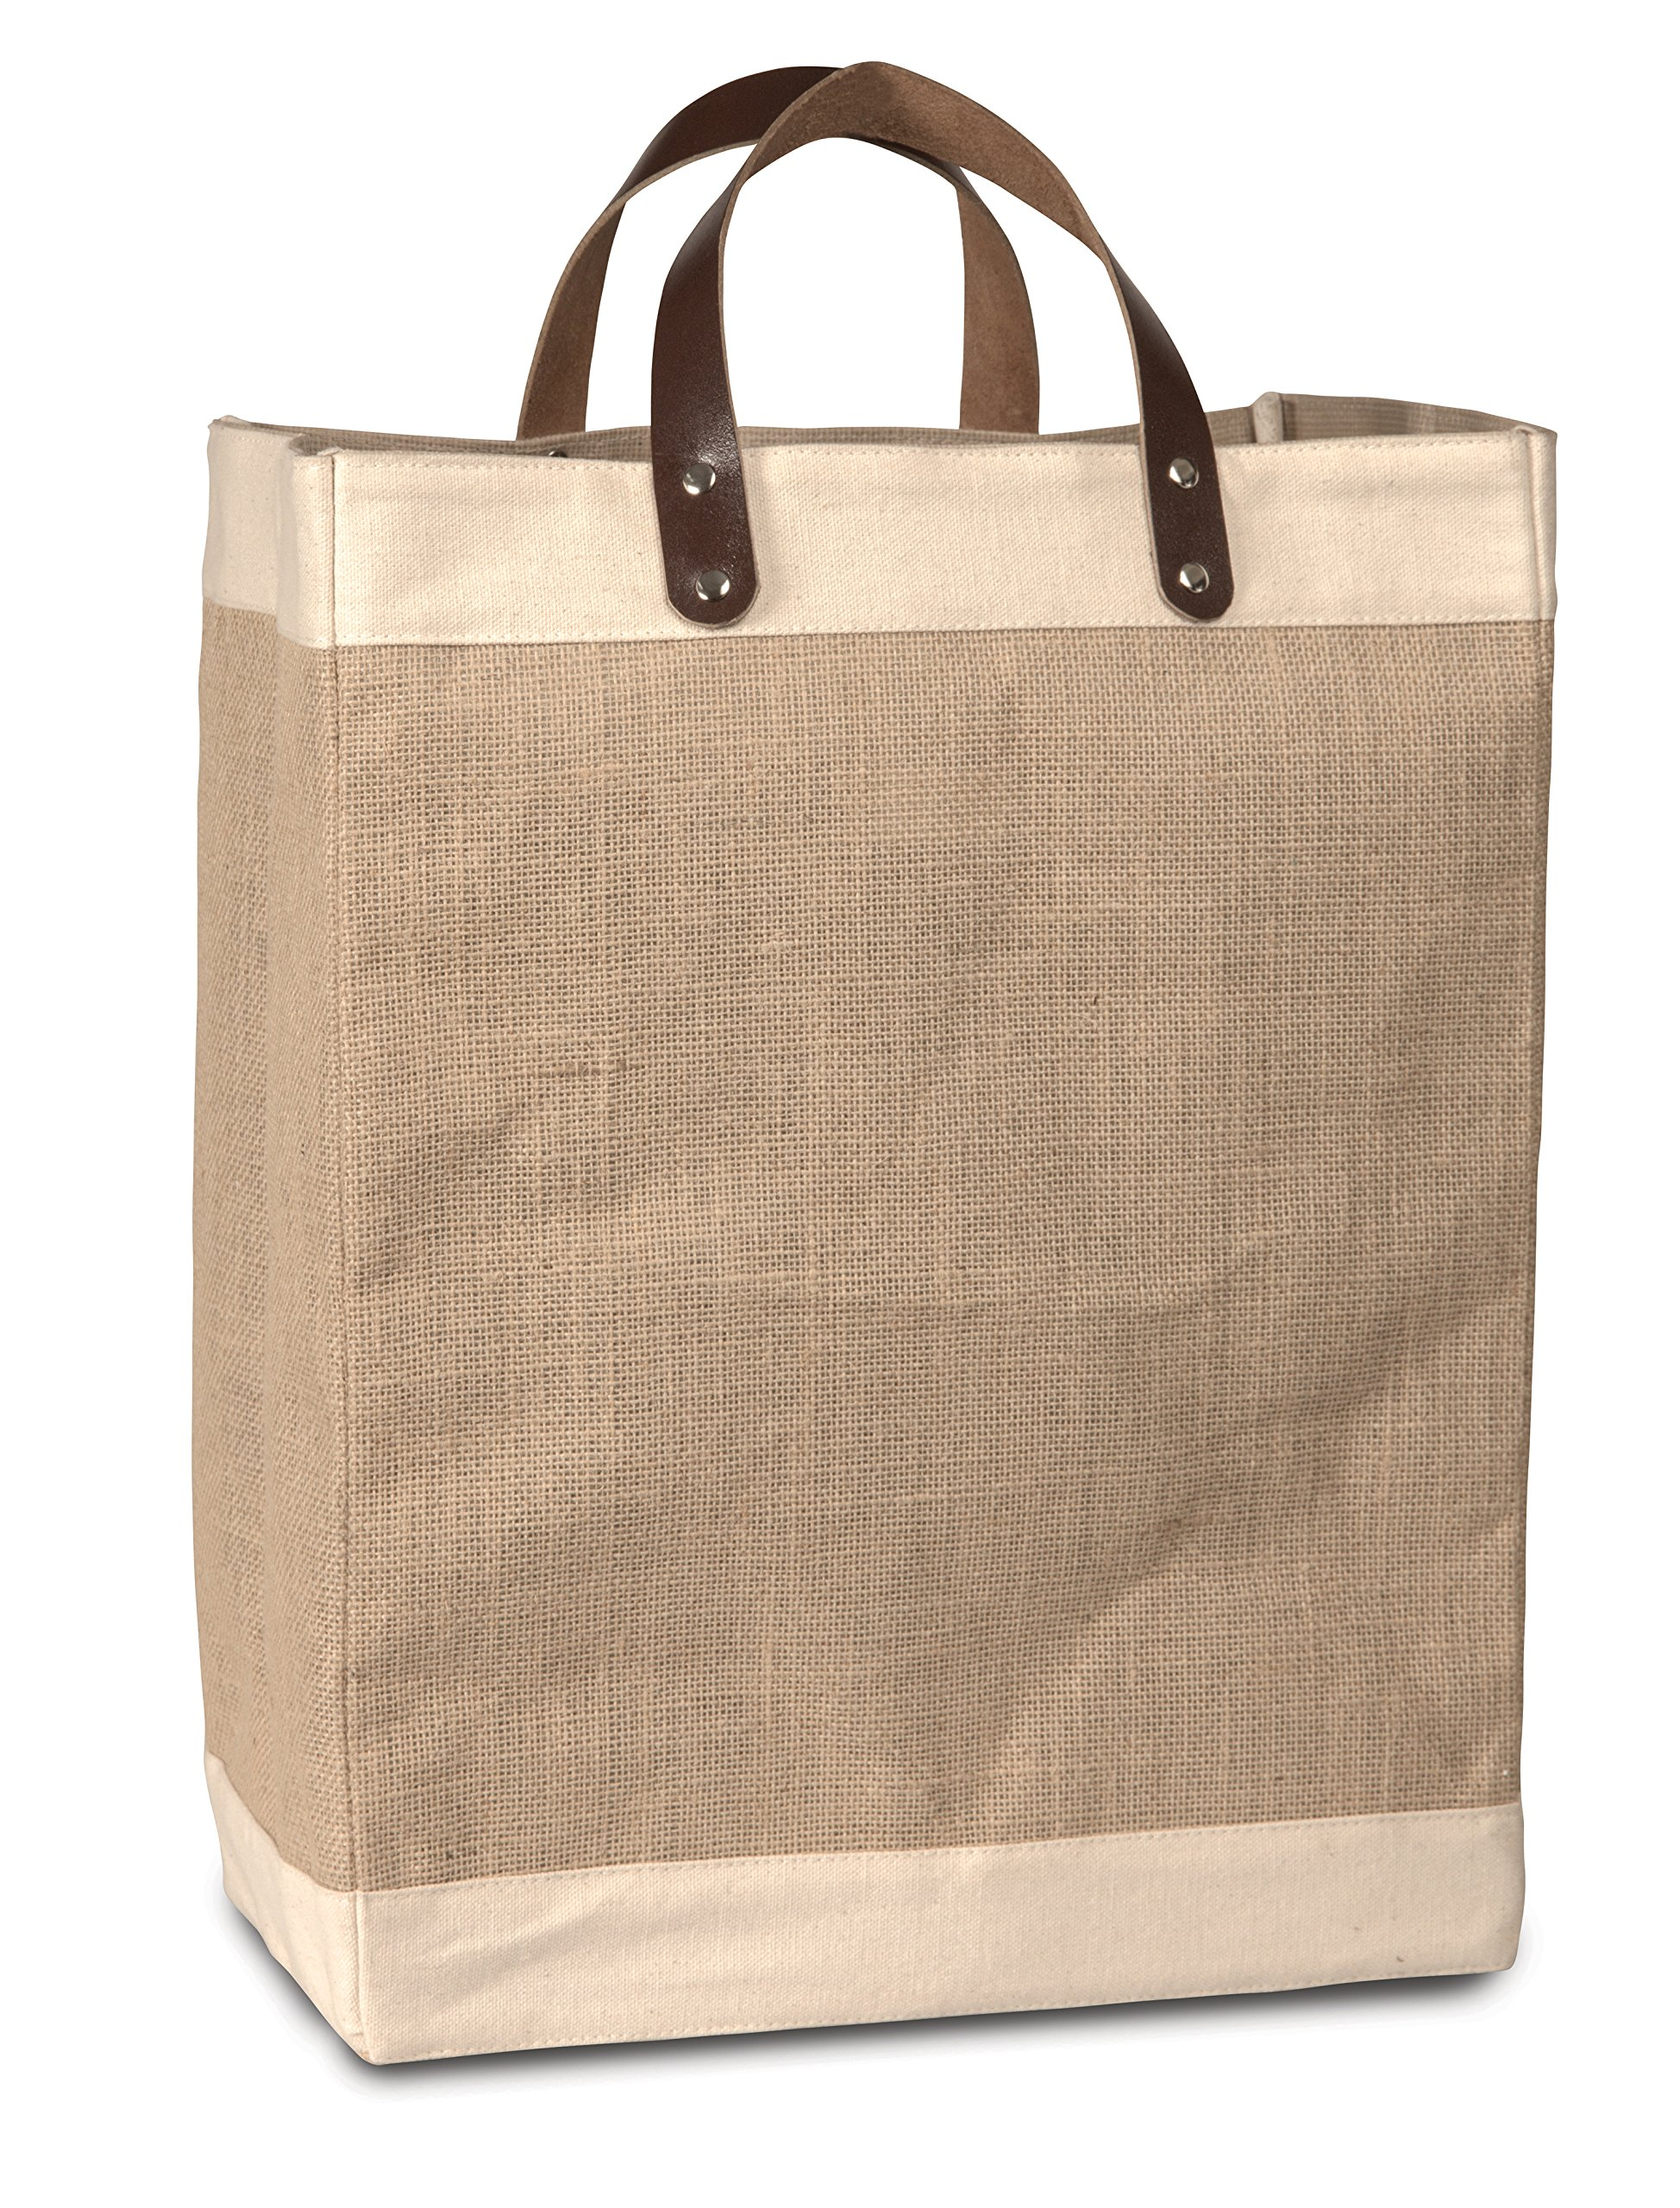 Pack of 50 -Eco-Friendly Jute Tote Bag with Cotton Accents & Leather Handles 13''W x 17''H x 8'' Gusset- Holiday Gift Ideas by CarryGreen